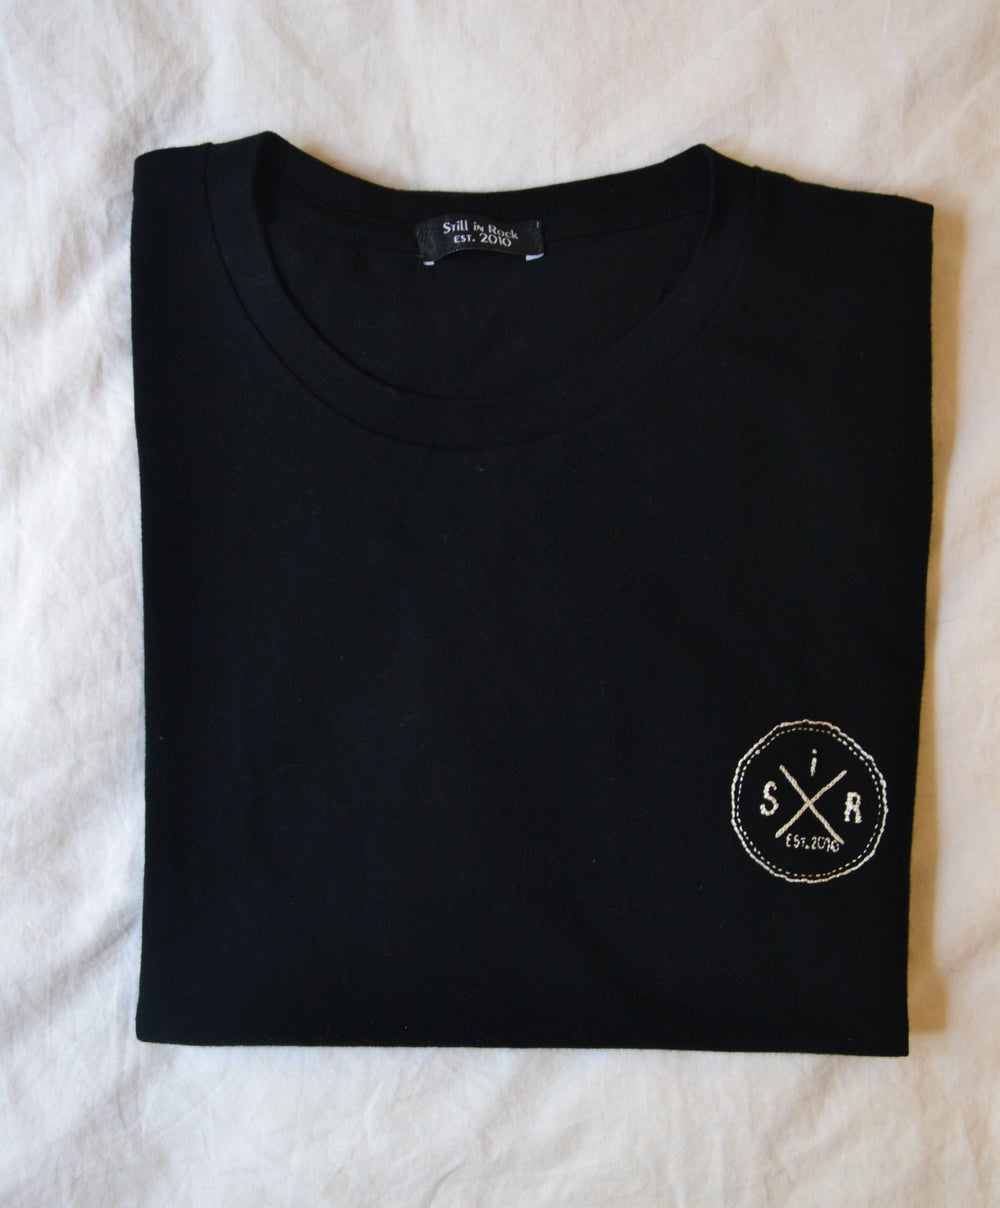 Image of T-shirt brodé à la main (hand embroidered)